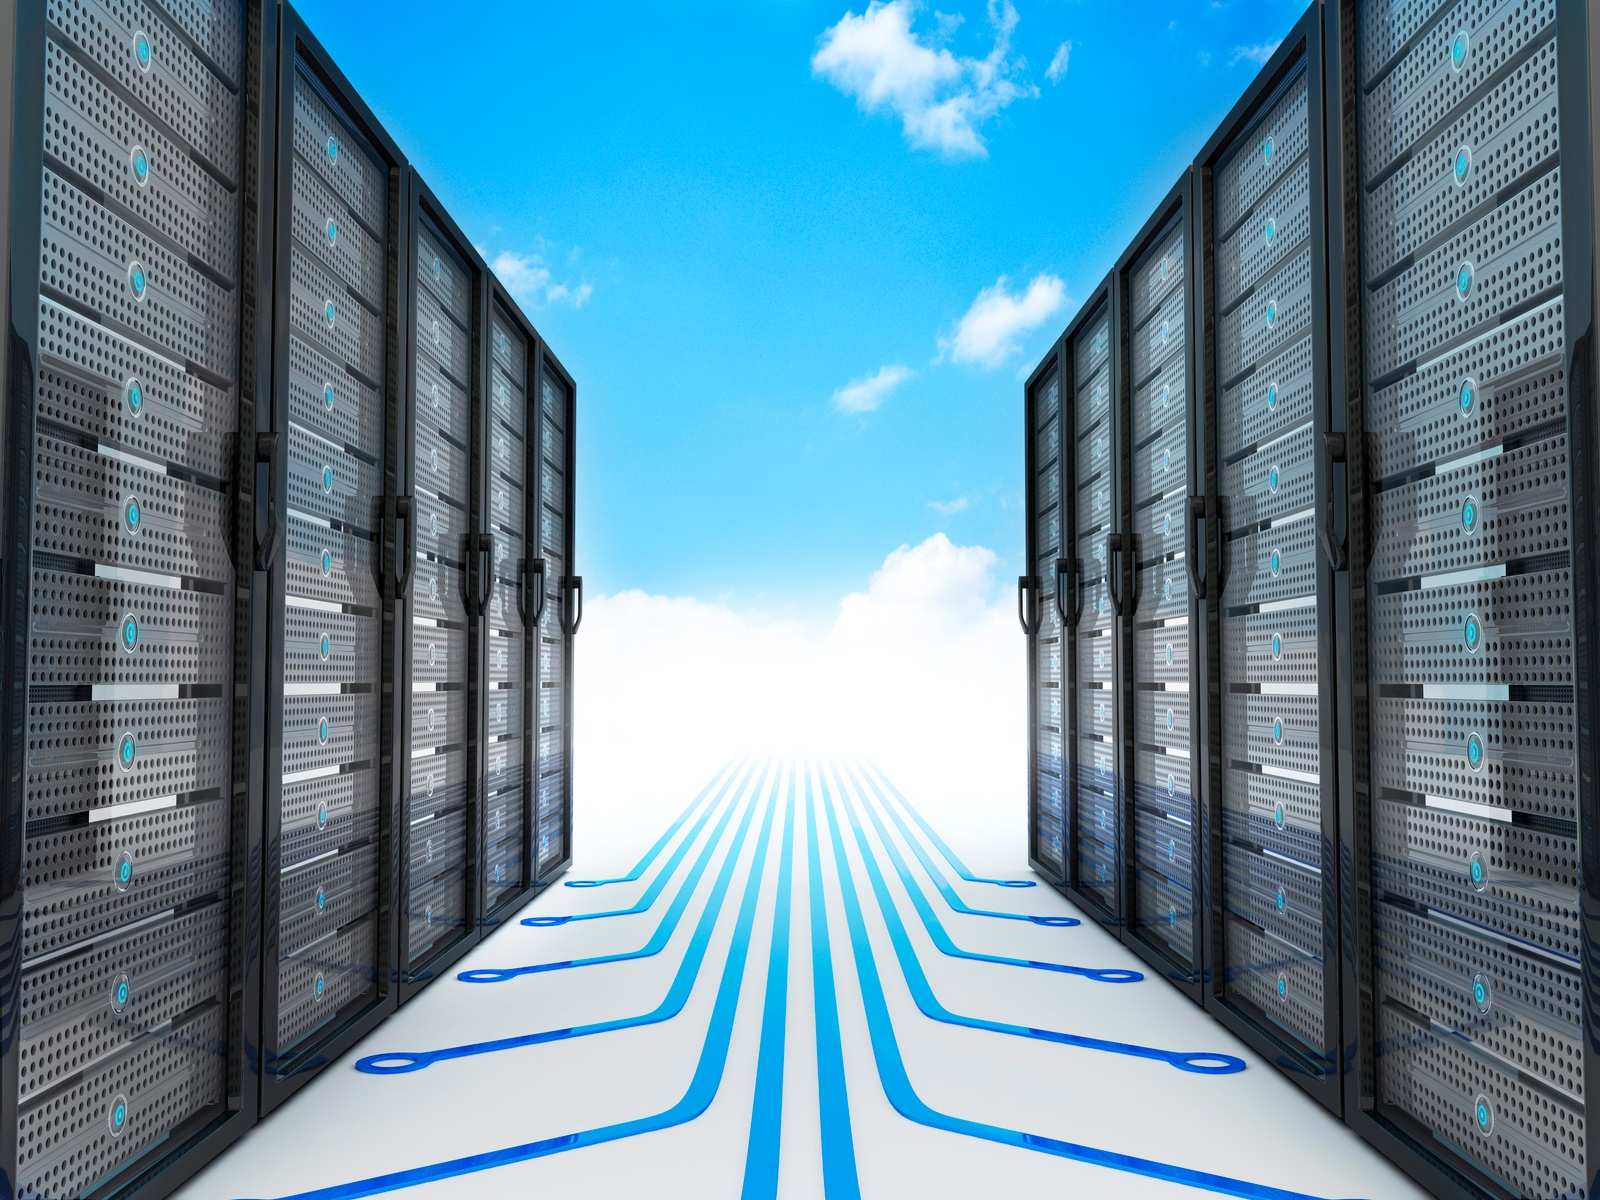 10 Reasons Why Cloud Storage Is Safer